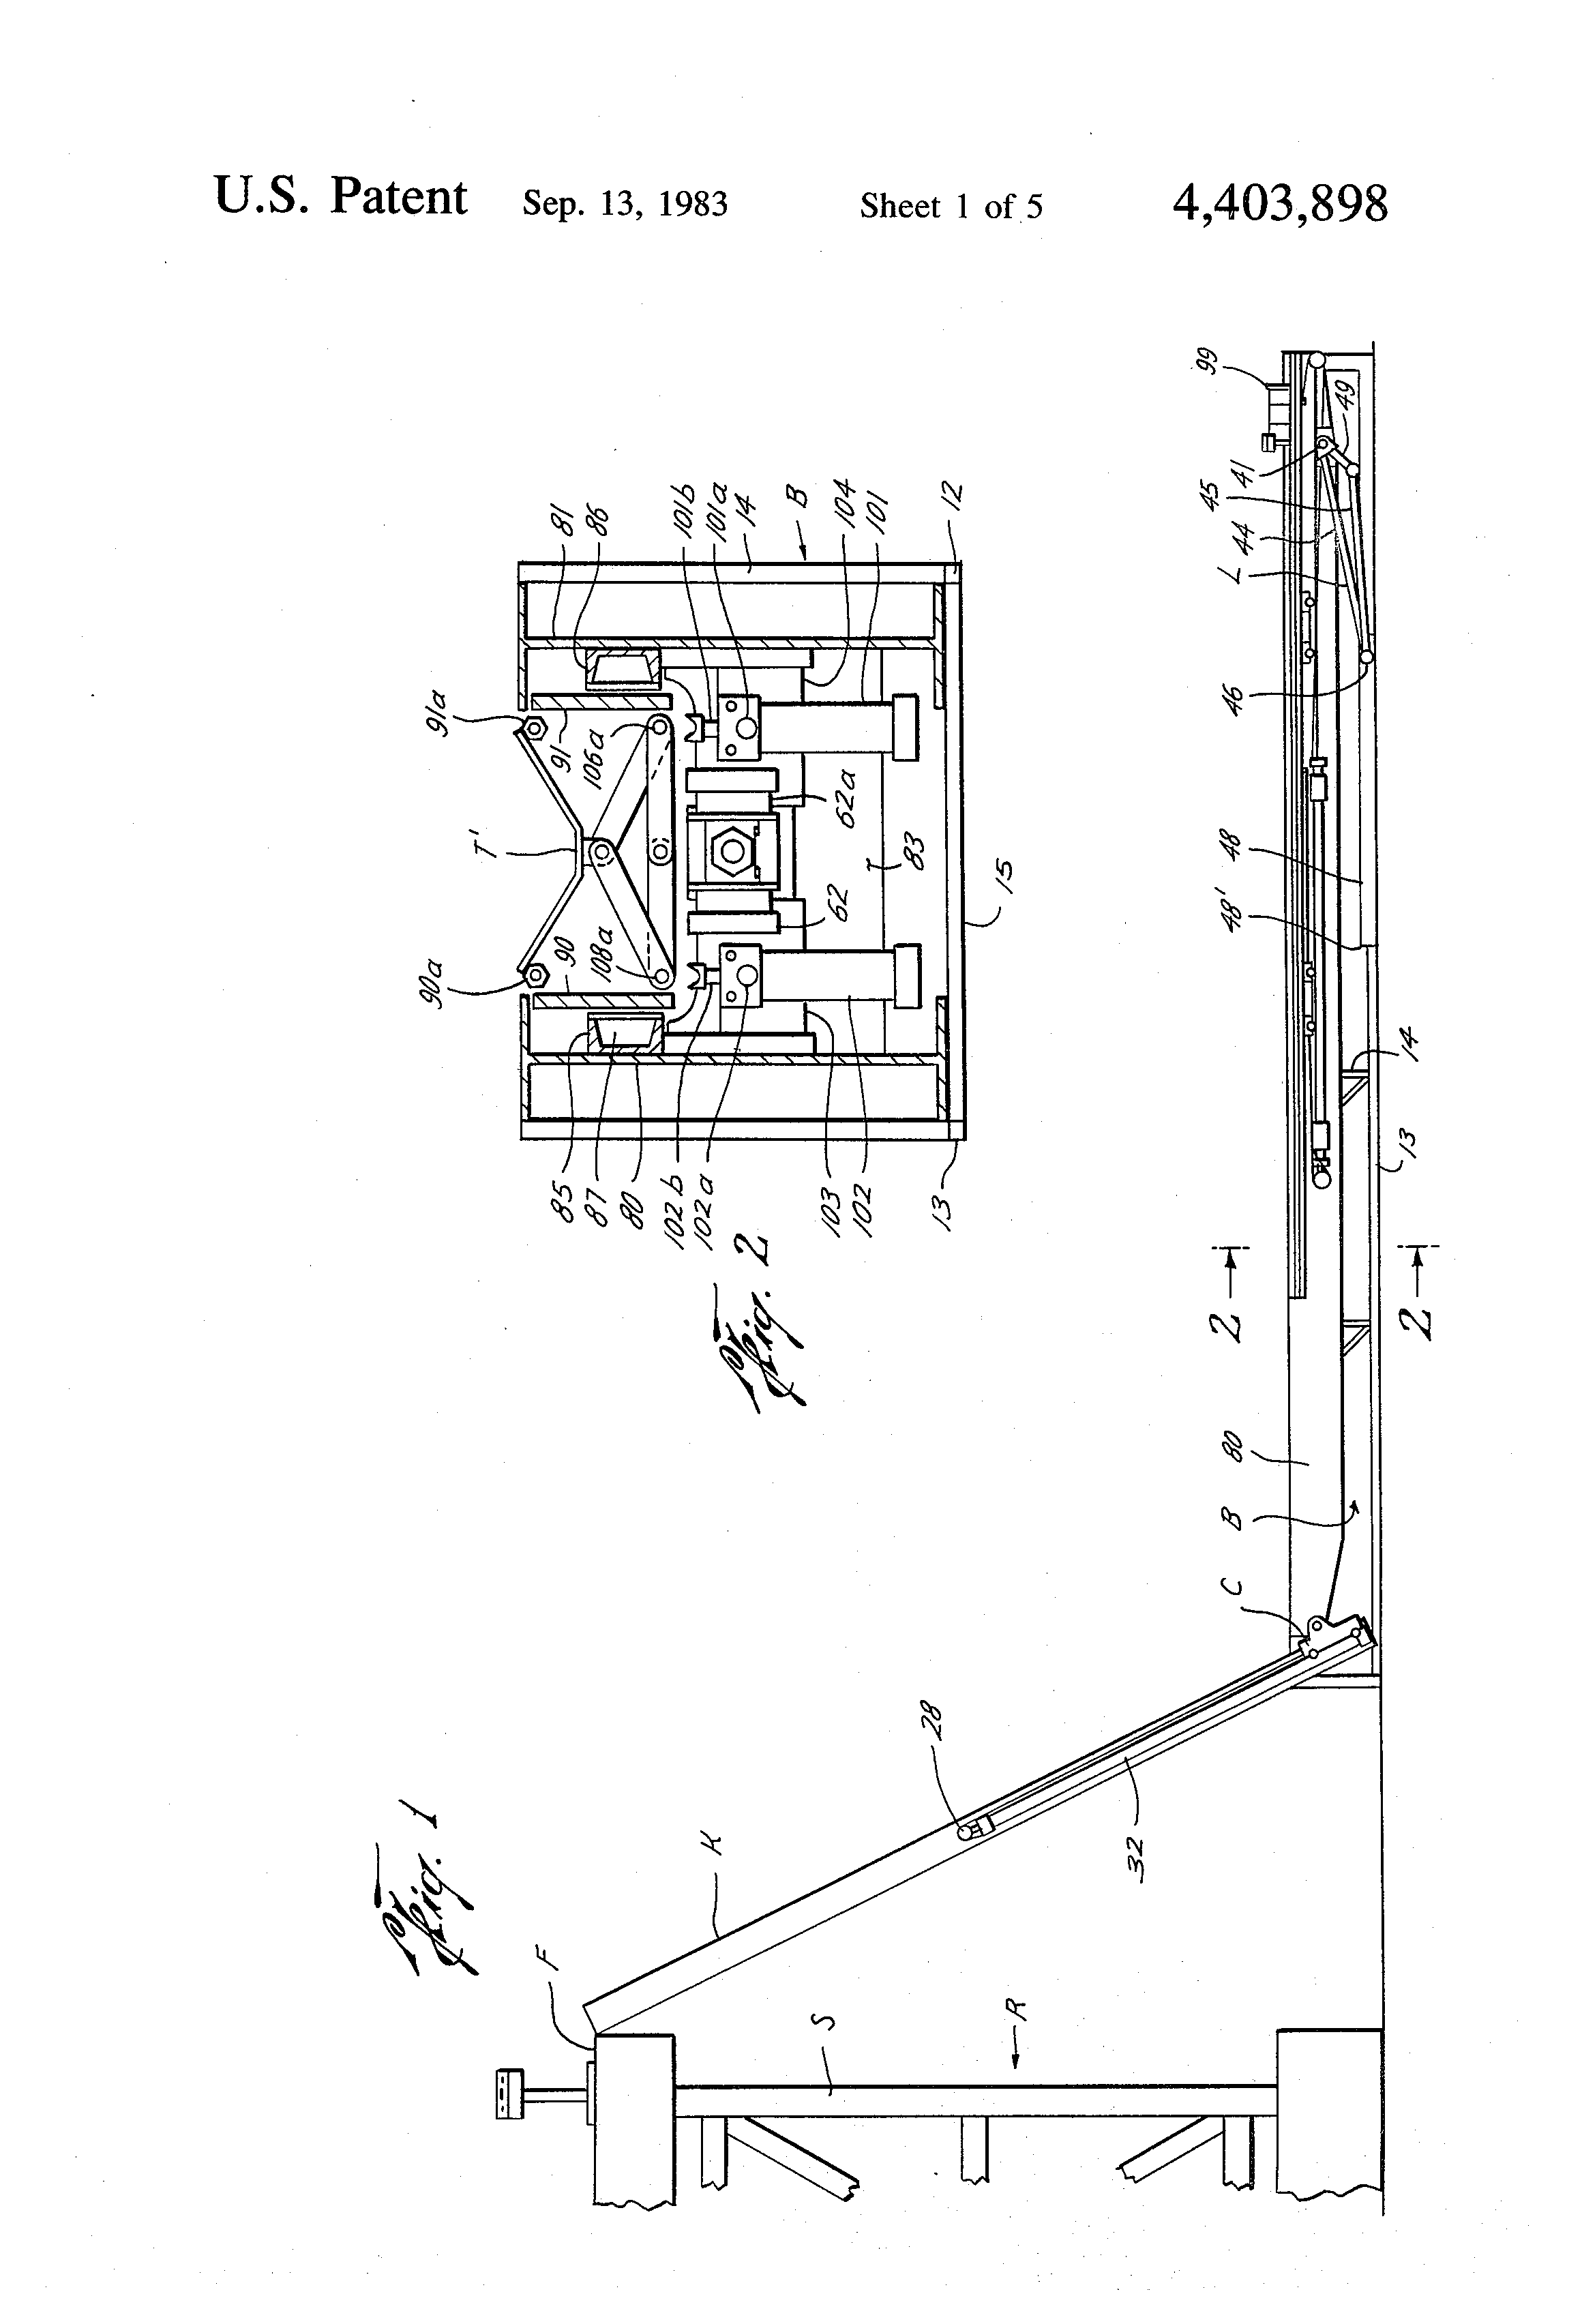 Rig Floor Elevation : Patent us pipe pick up and laydown machine